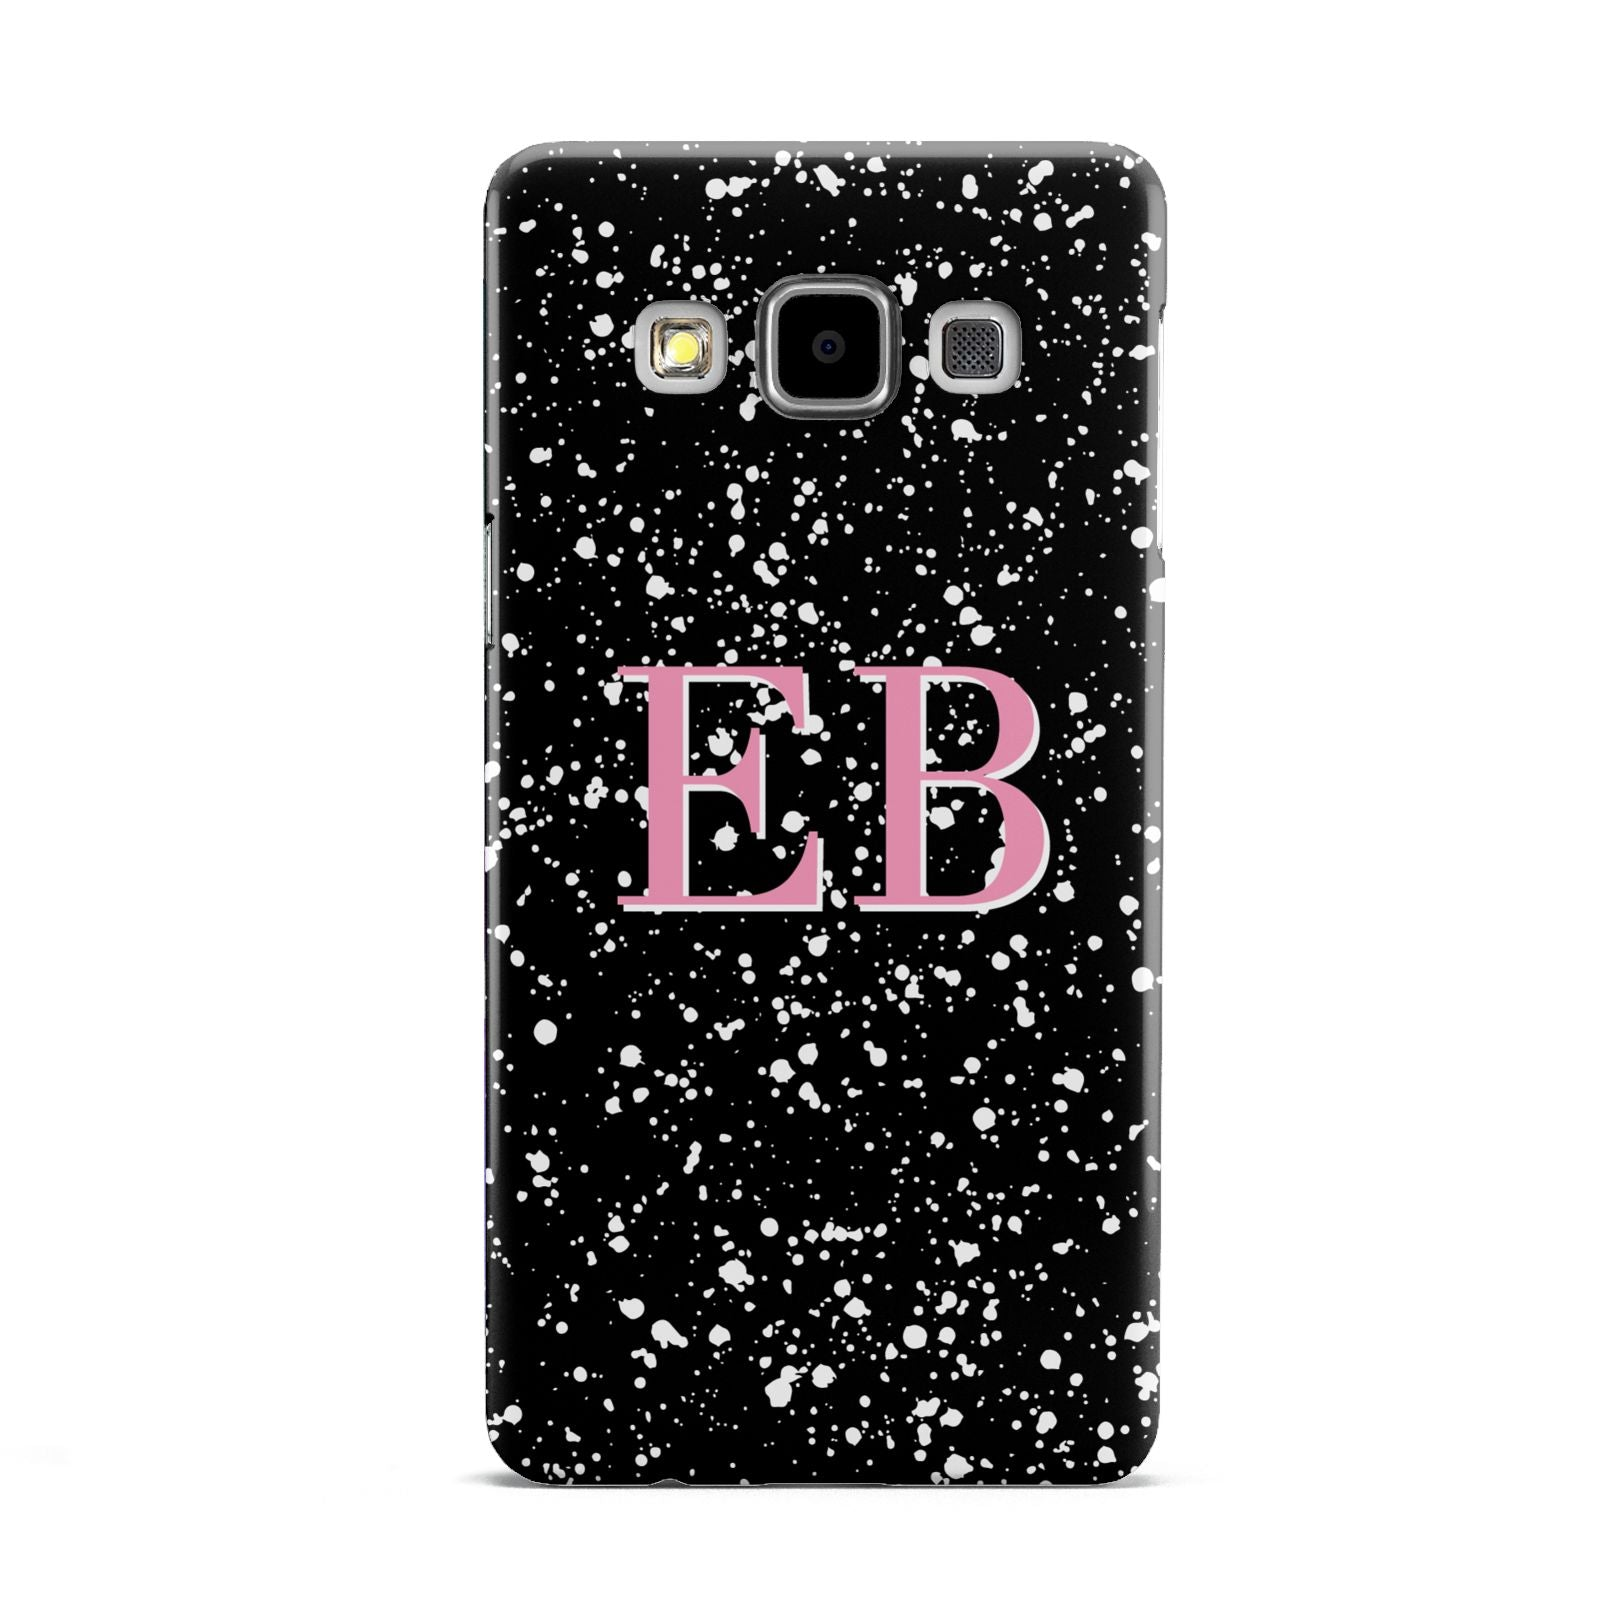 Personalised Black Ink Splat Initials Samsung Galaxy A5 Case